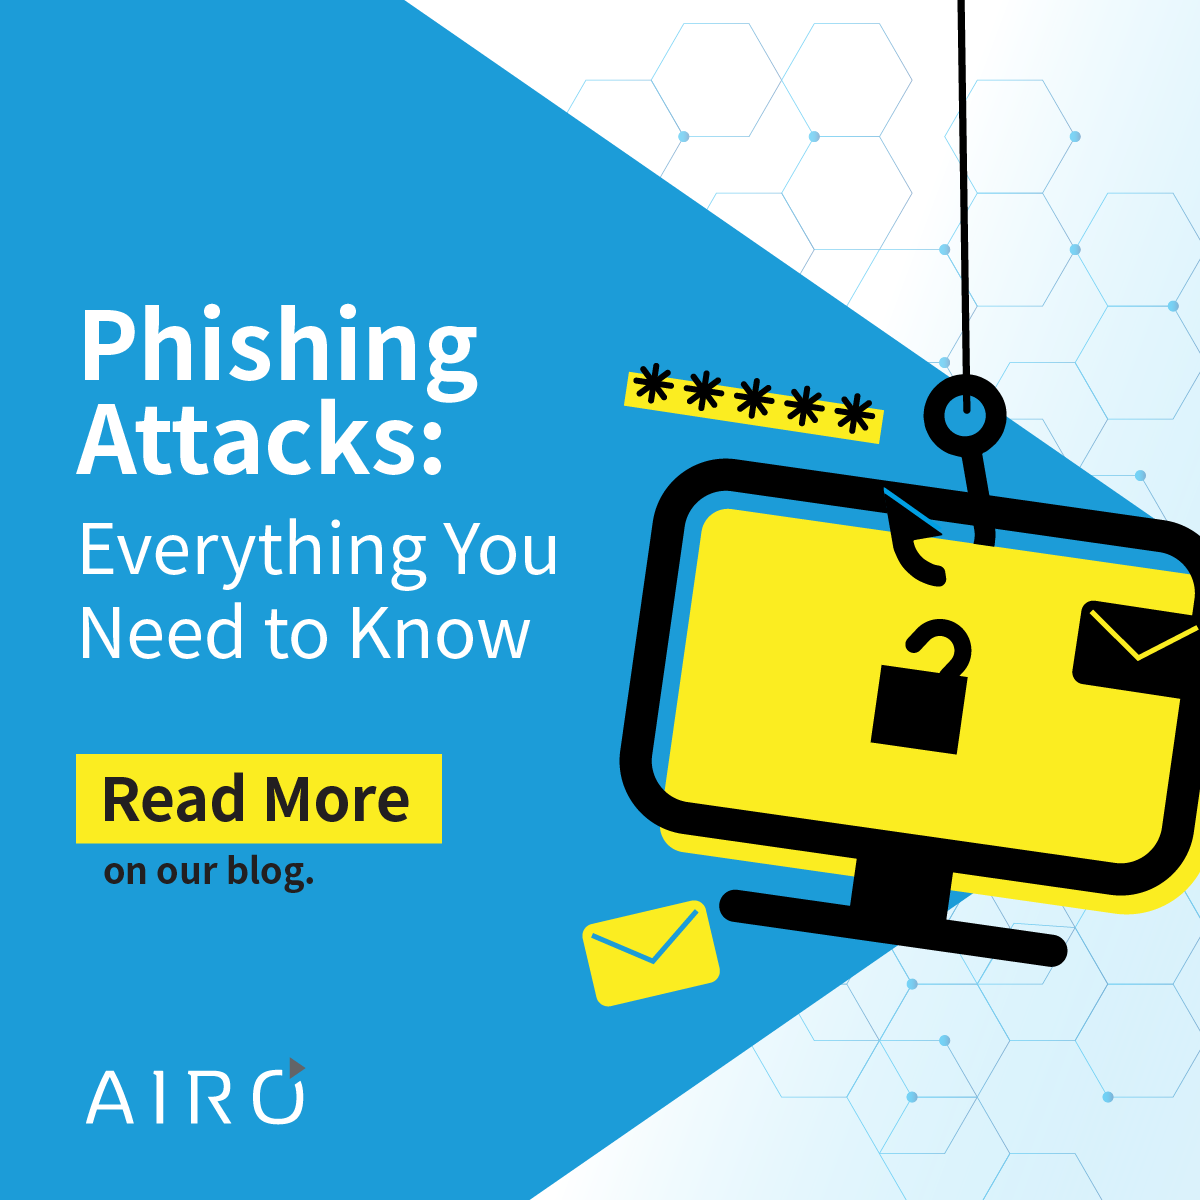 Phishing Attacks: Everything You Need to Know